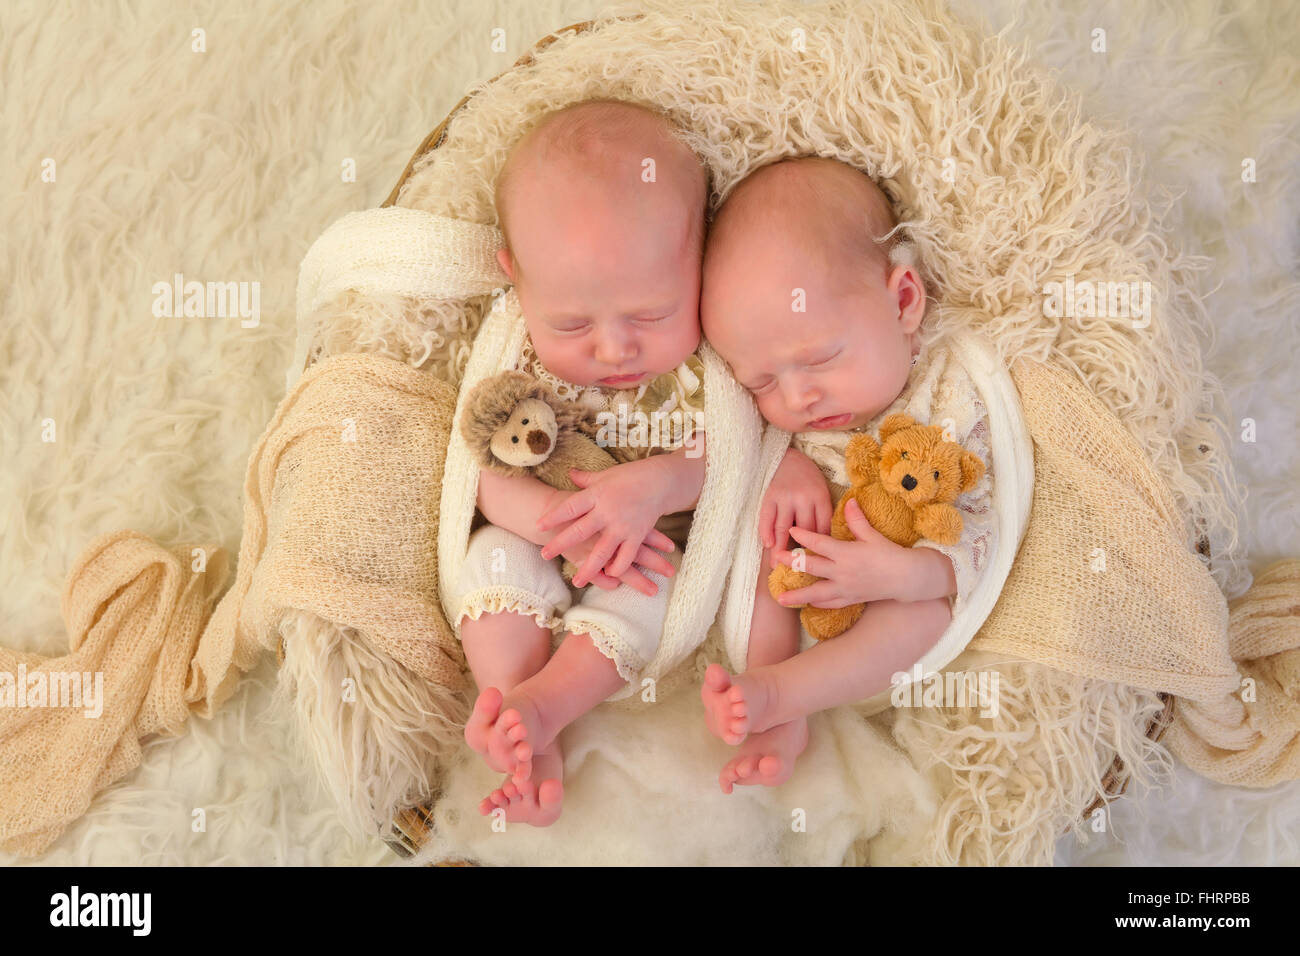 Adorable newborn identical twin baby girls sleeping in a ...